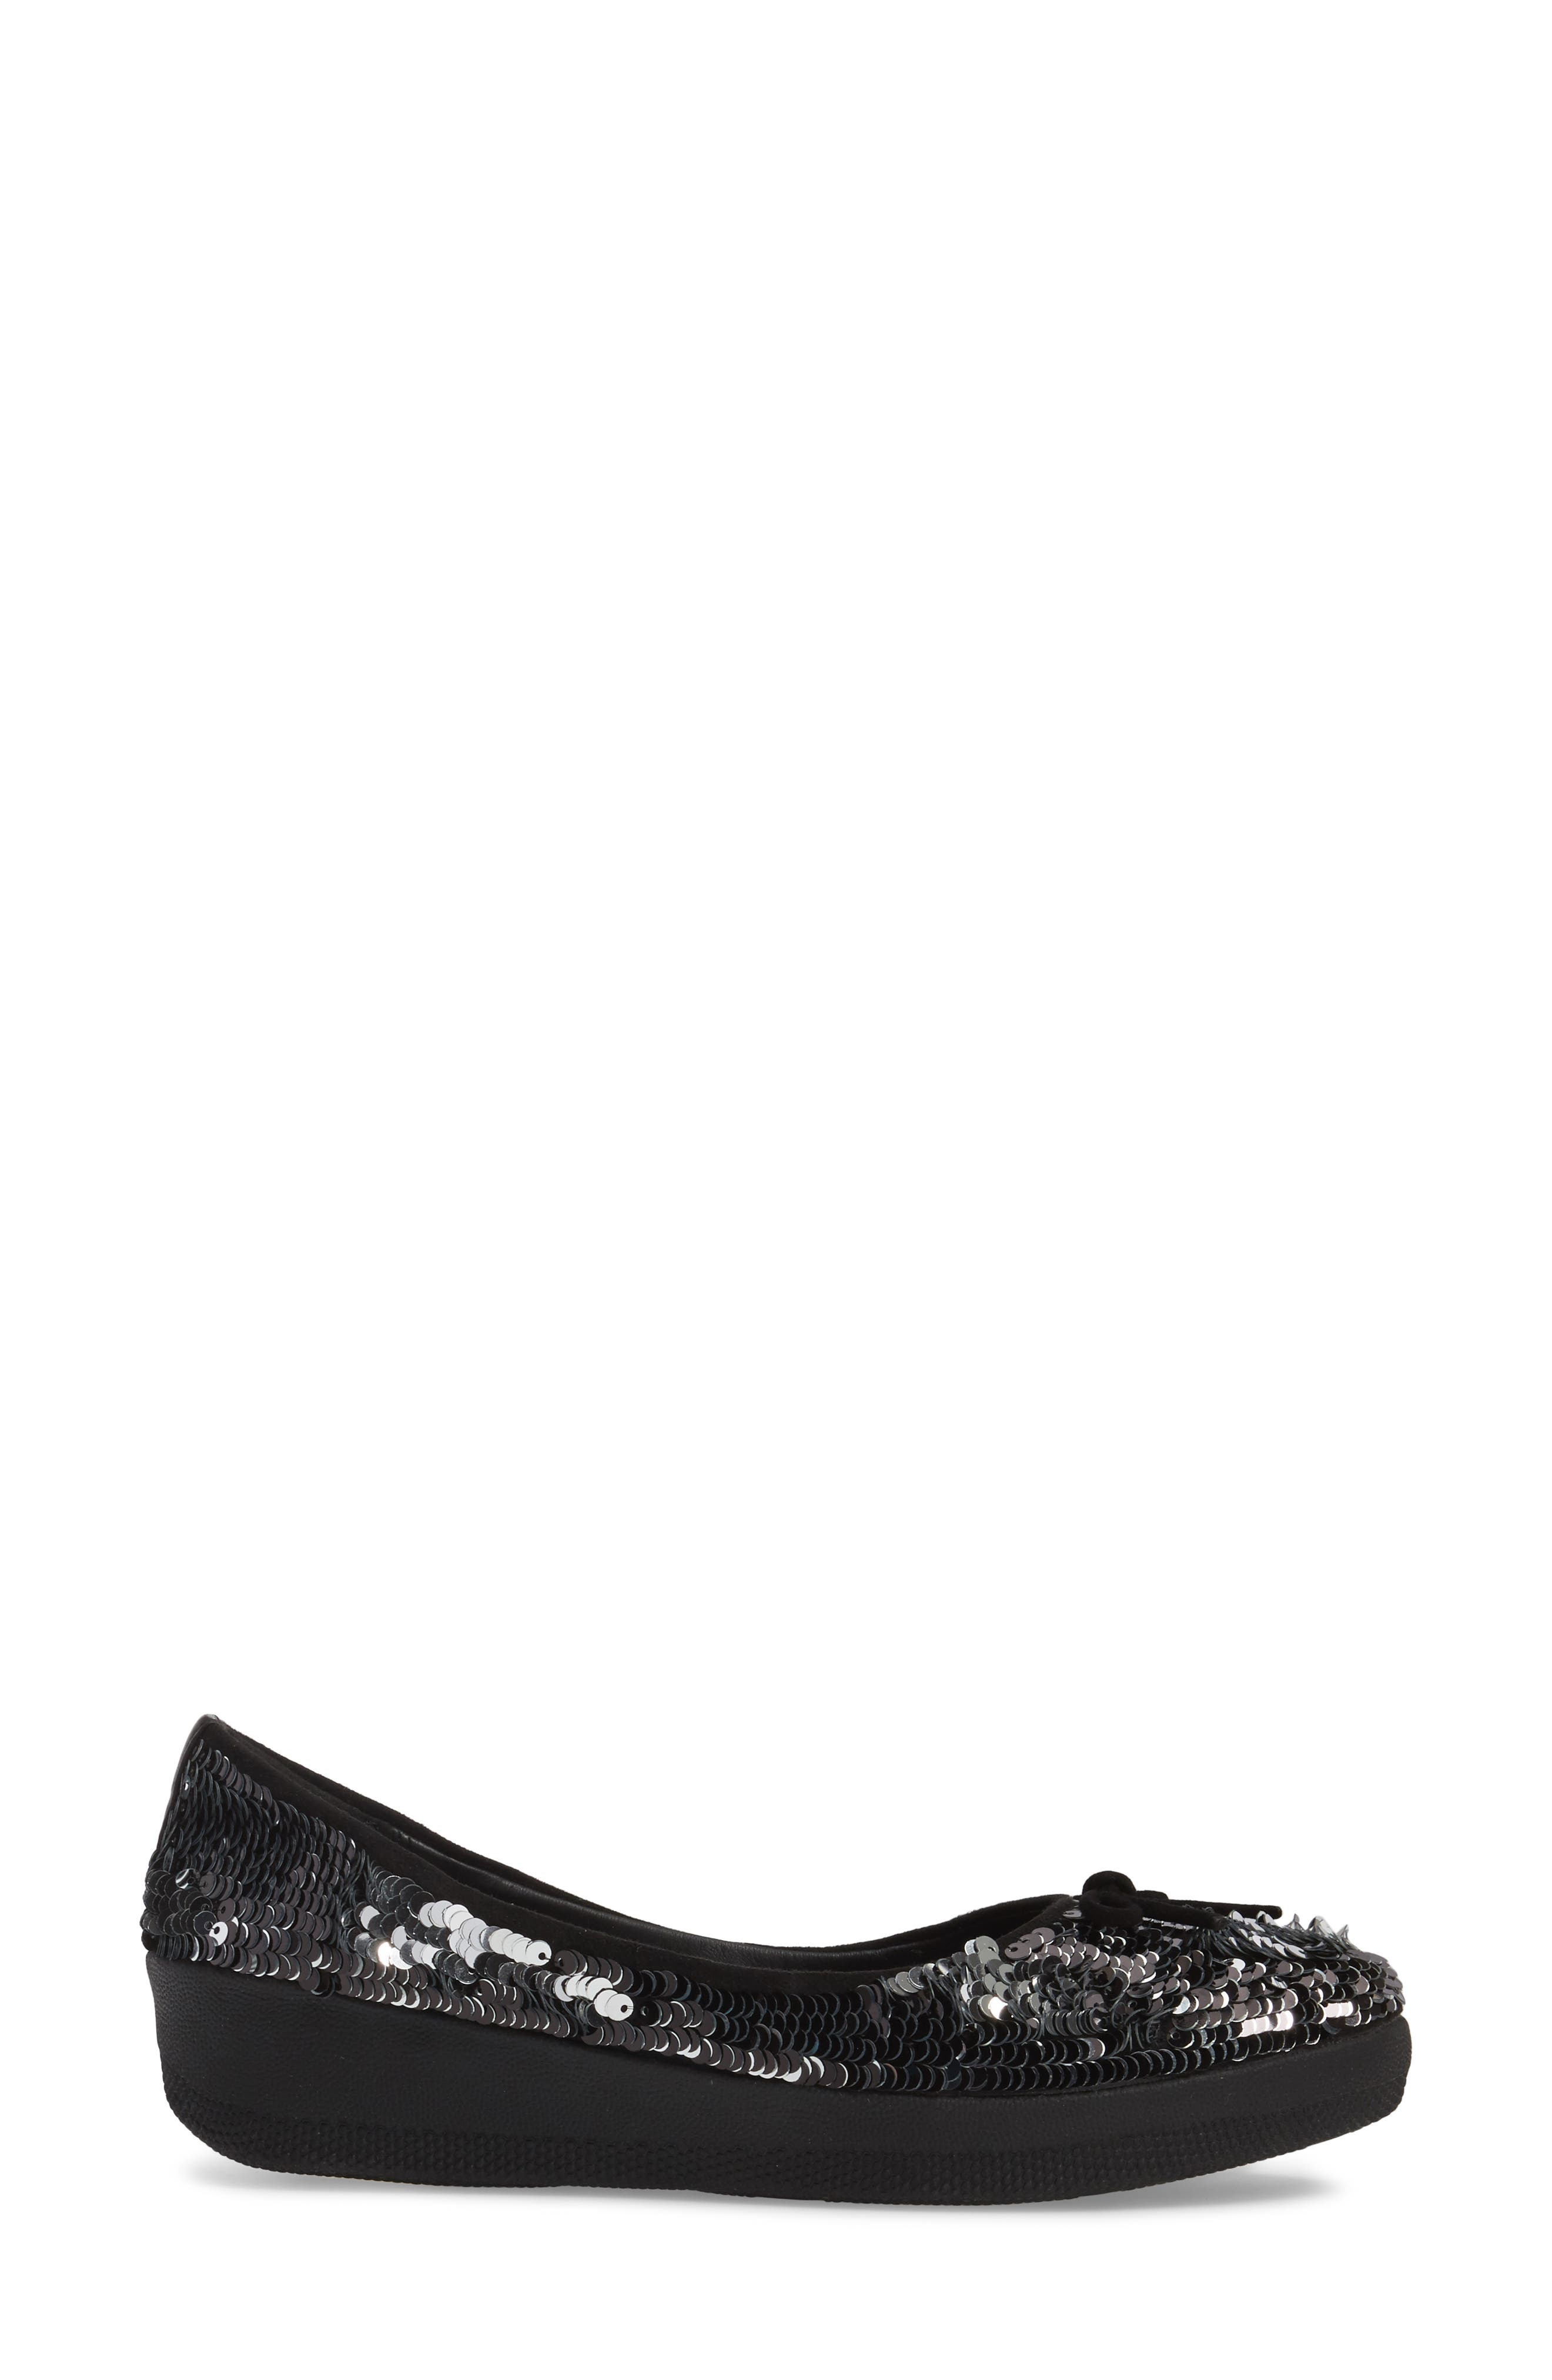 Superballerina Sequin Ballet Flat,                             Alternate thumbnail 3, color,                             Black Fabric